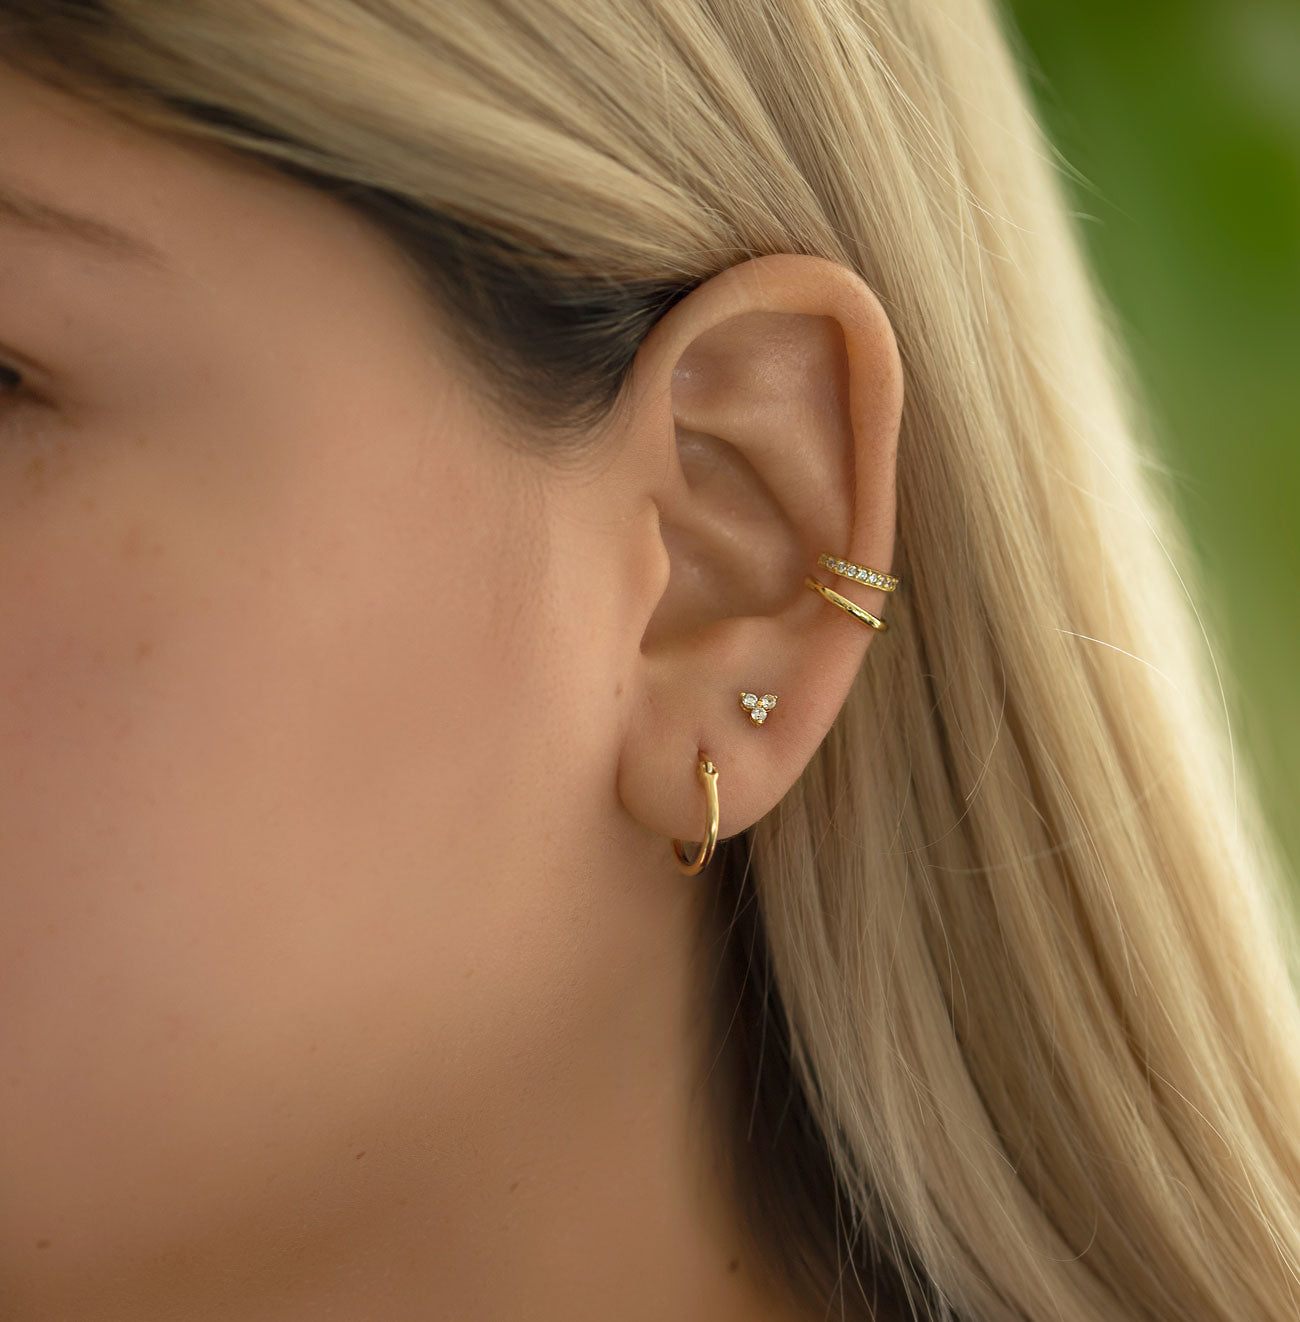 Curated Ear with Classic Gold Huggie Earring, Clover Stud Earring, Eternity and Pave Ear Cuff